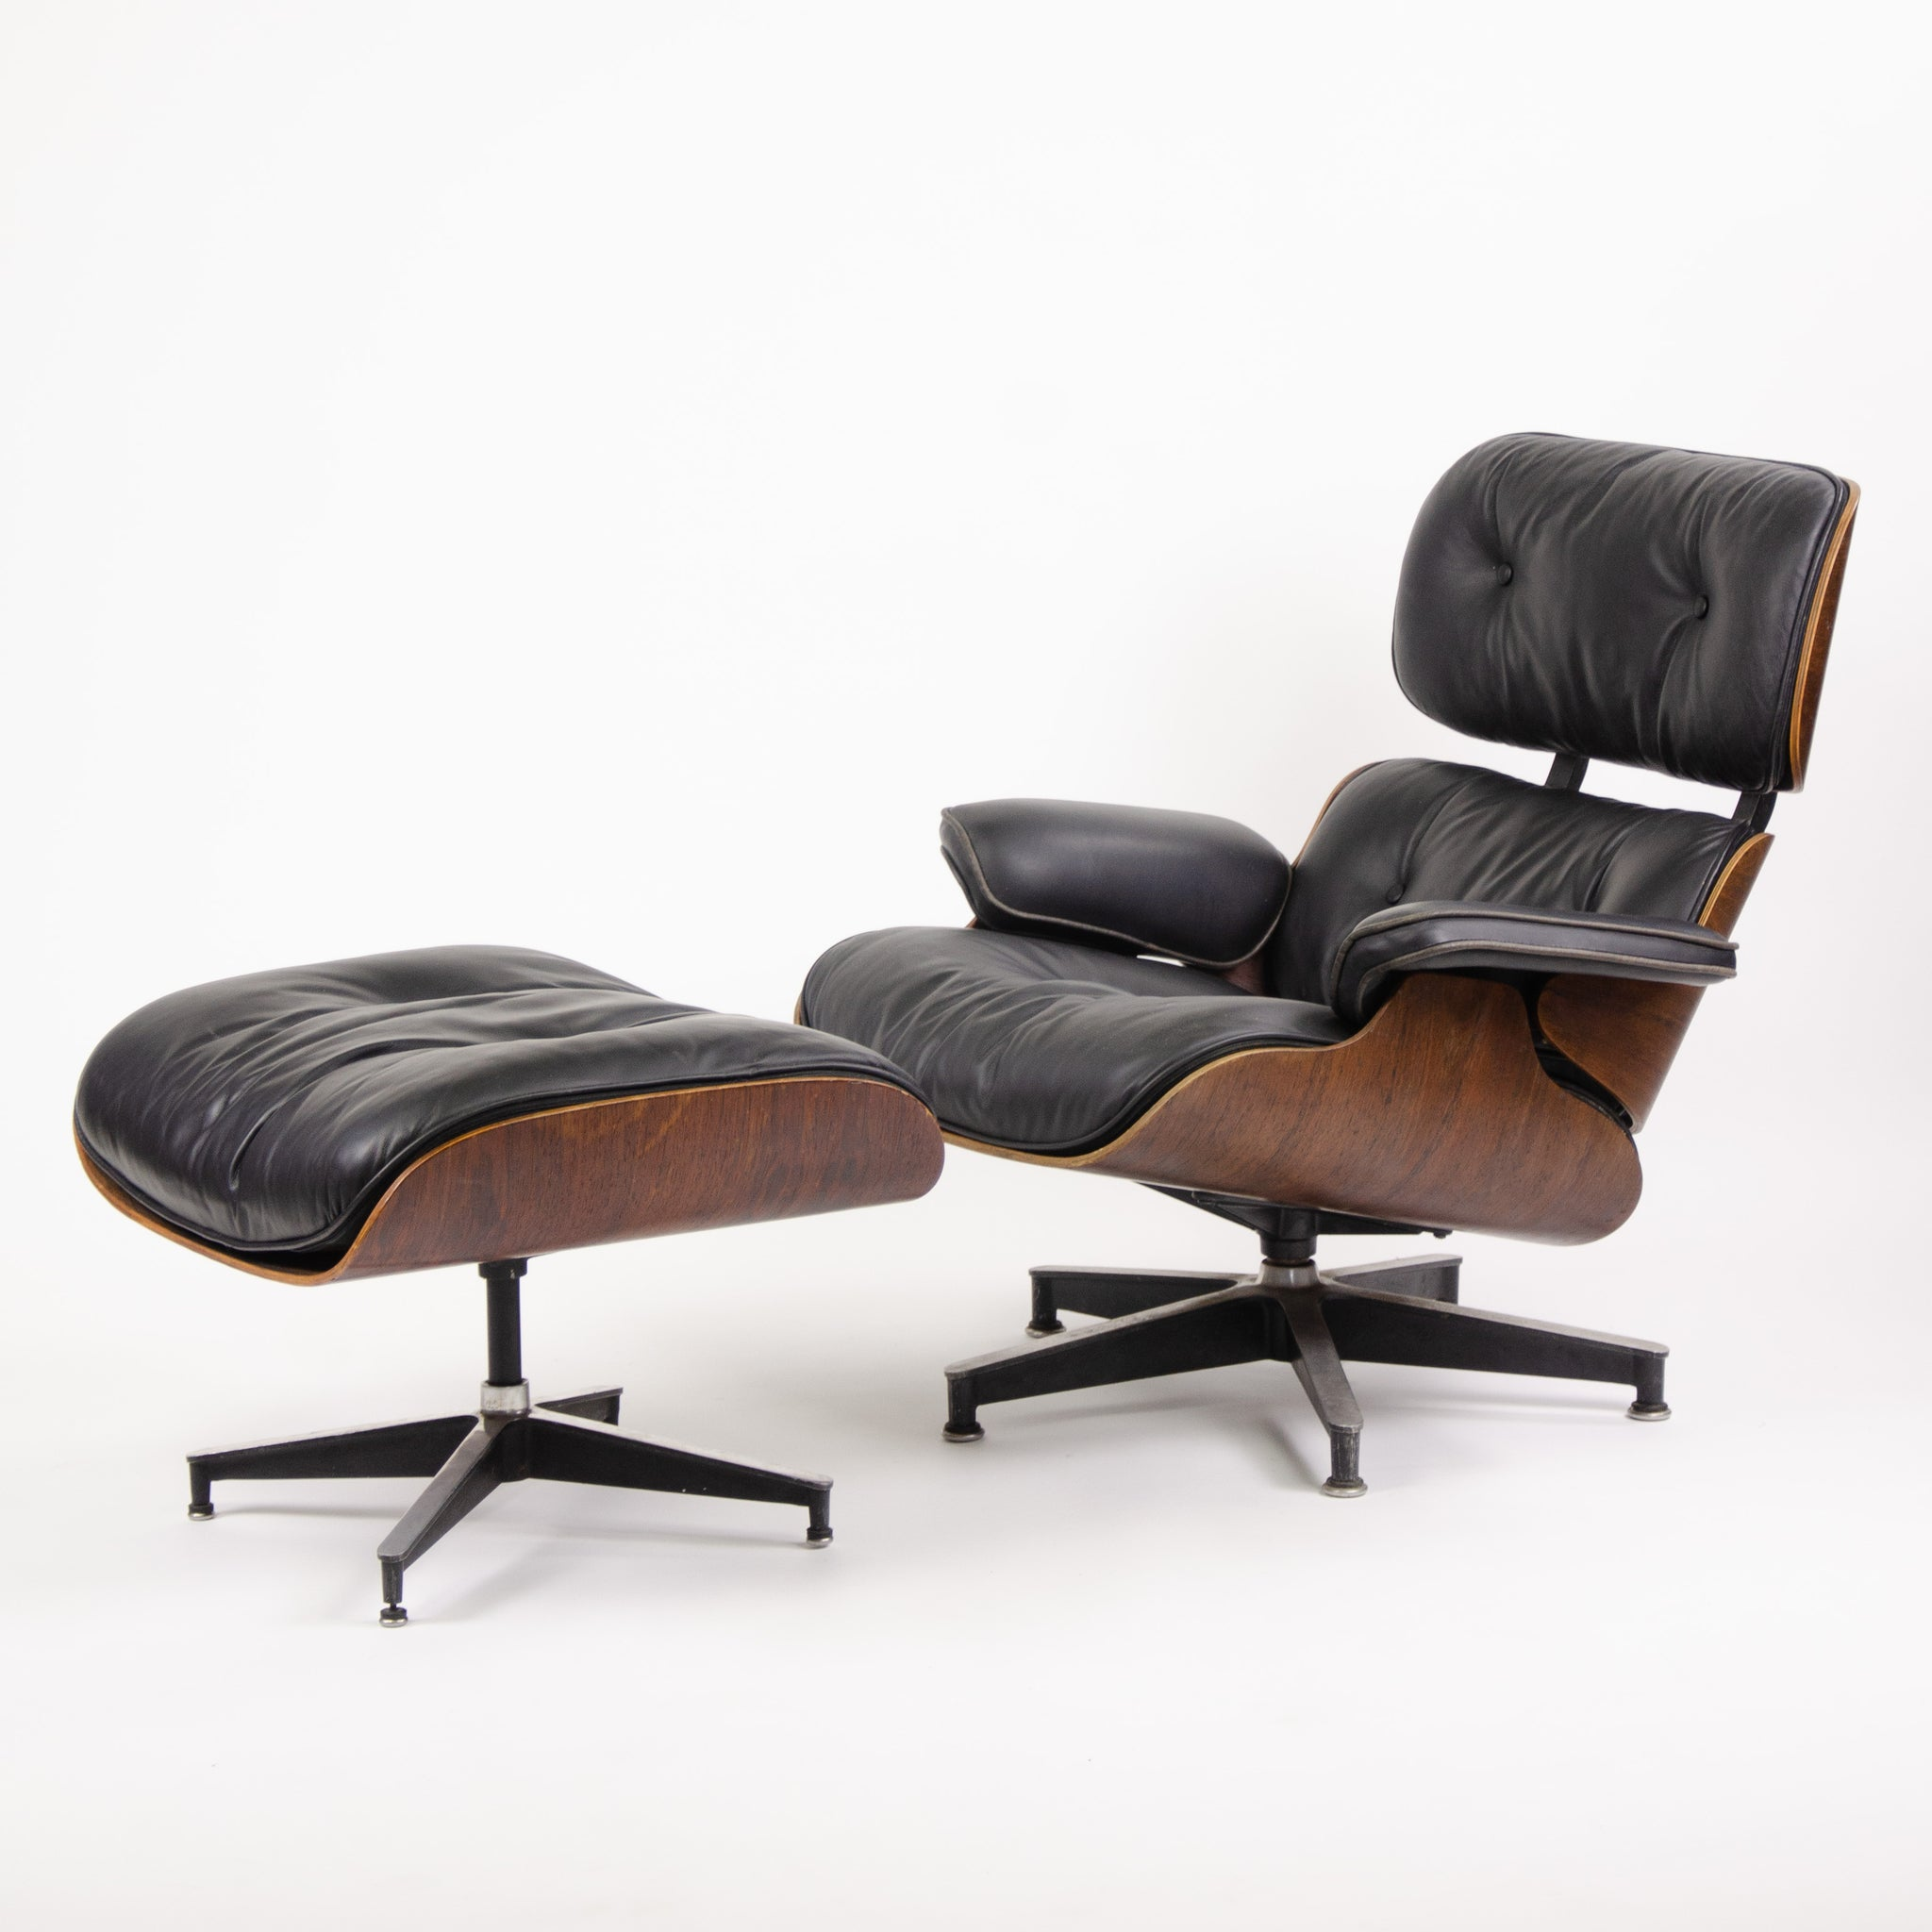 Outstanding Sold 1950S Herman Miller Eames Lounge Chair Ottoman Dailytribune Chair Design For Home Dailytribuneorg